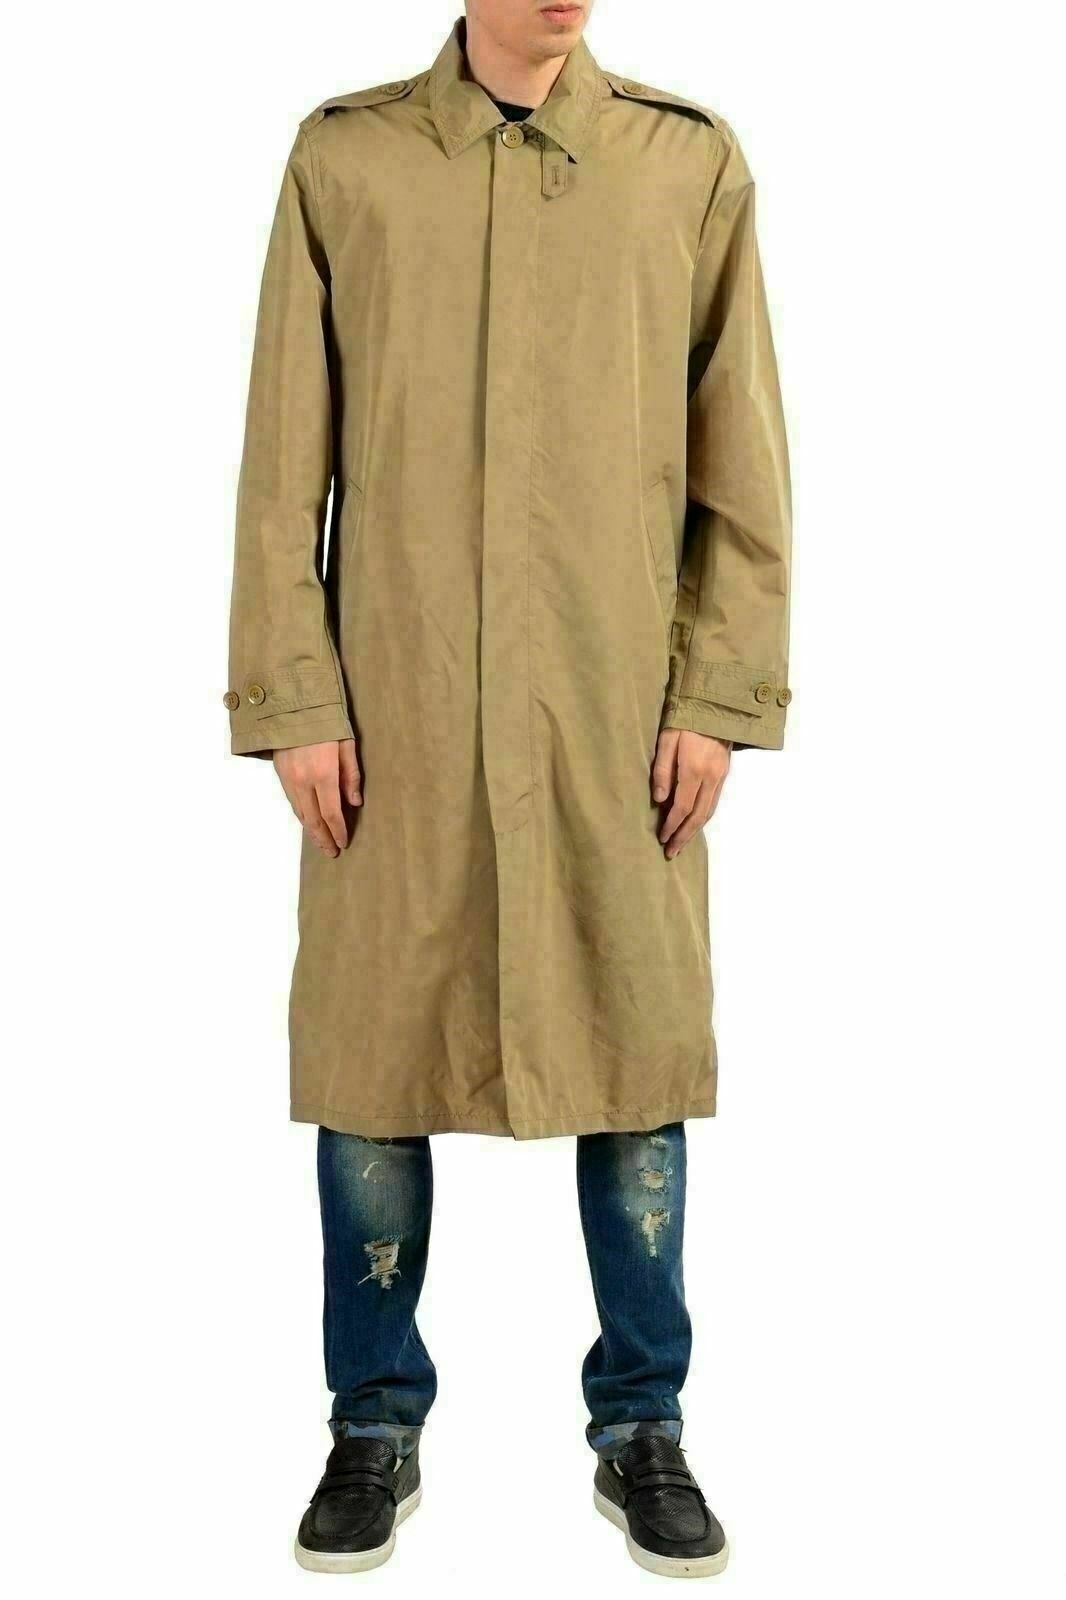 Kenneth Cole New York Men's Beige Button Up Trench Coat Size L